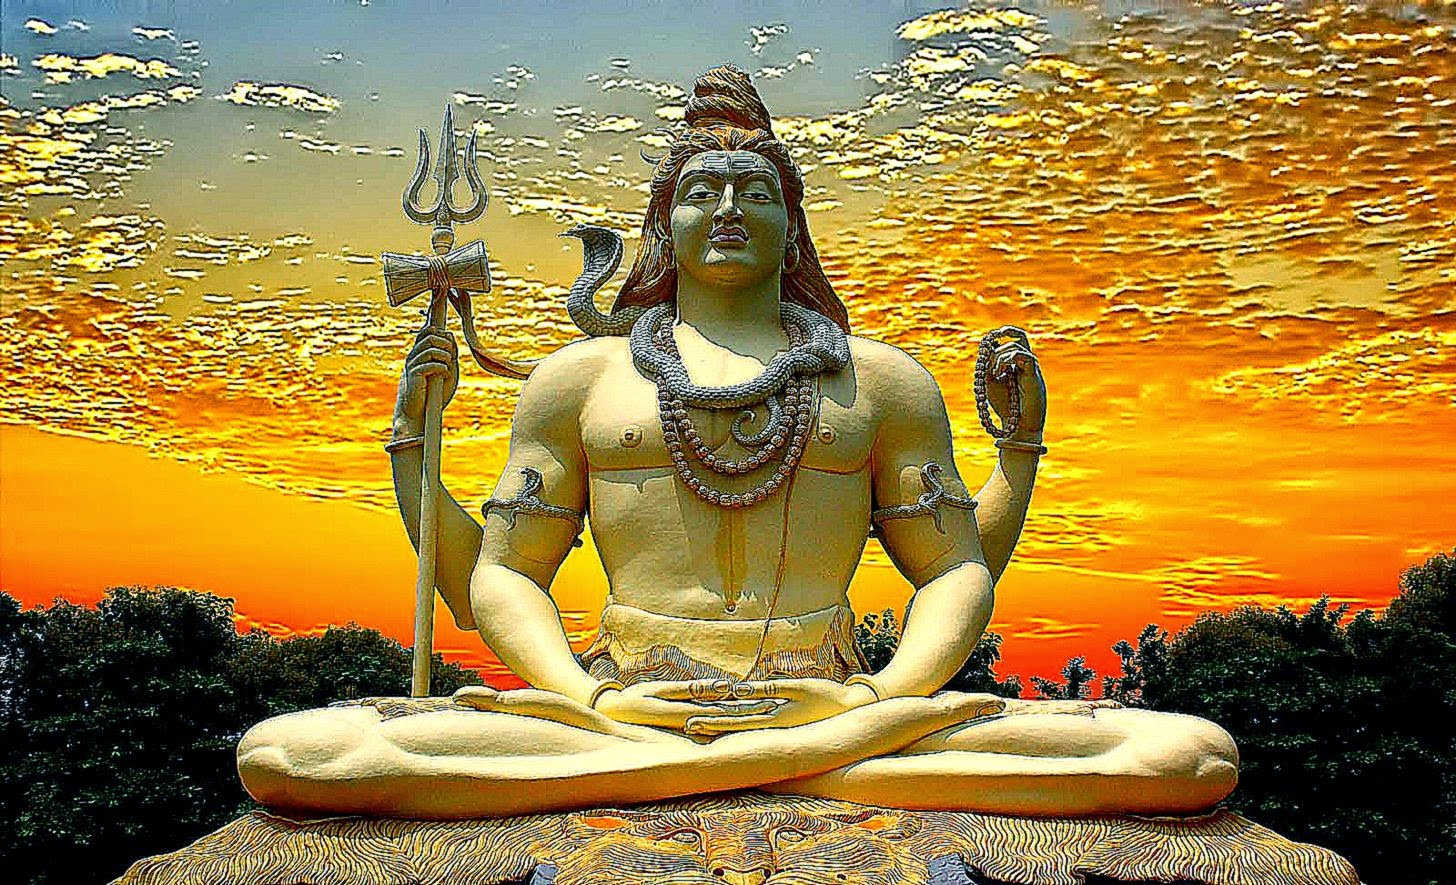 Lord Shiva Hd Wallpapers: Lord Shiva Wallpaper Hd